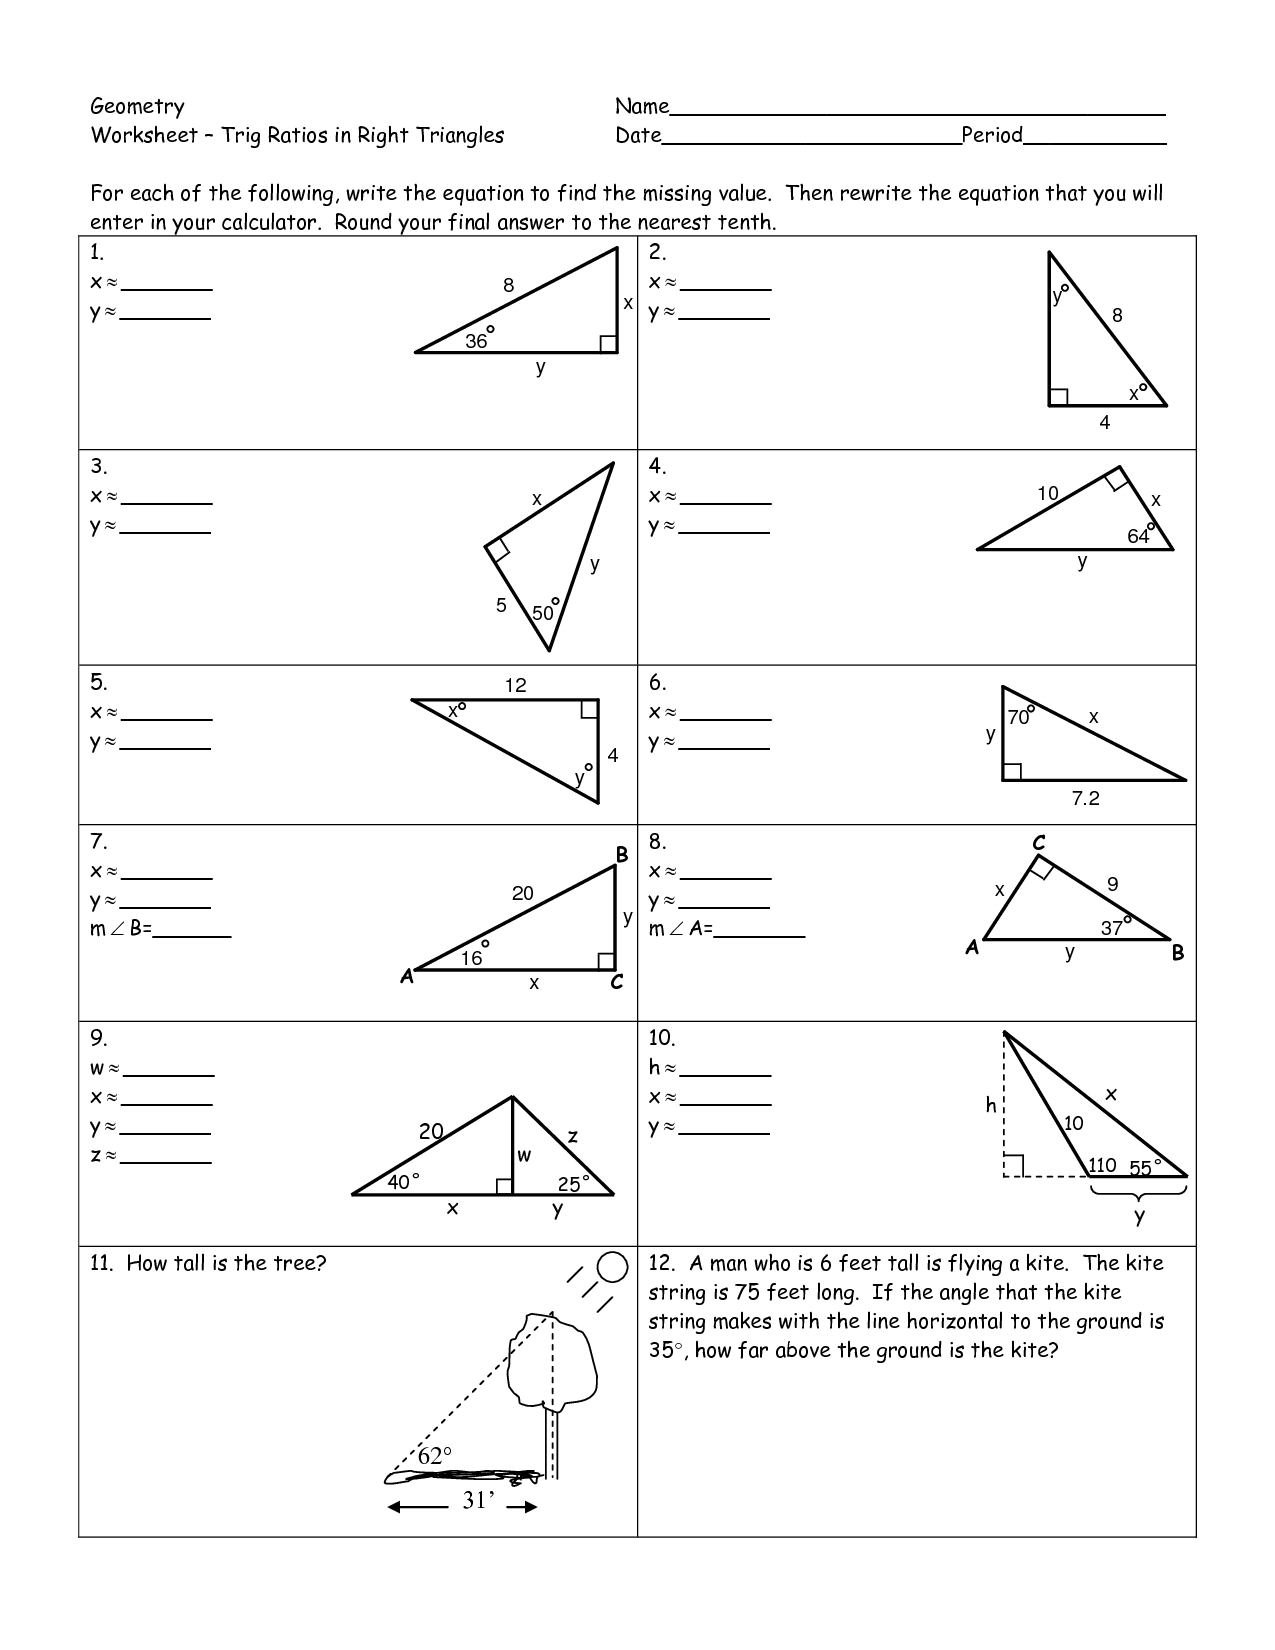 Trigonometry Ratios In Right Triangles Worksheet